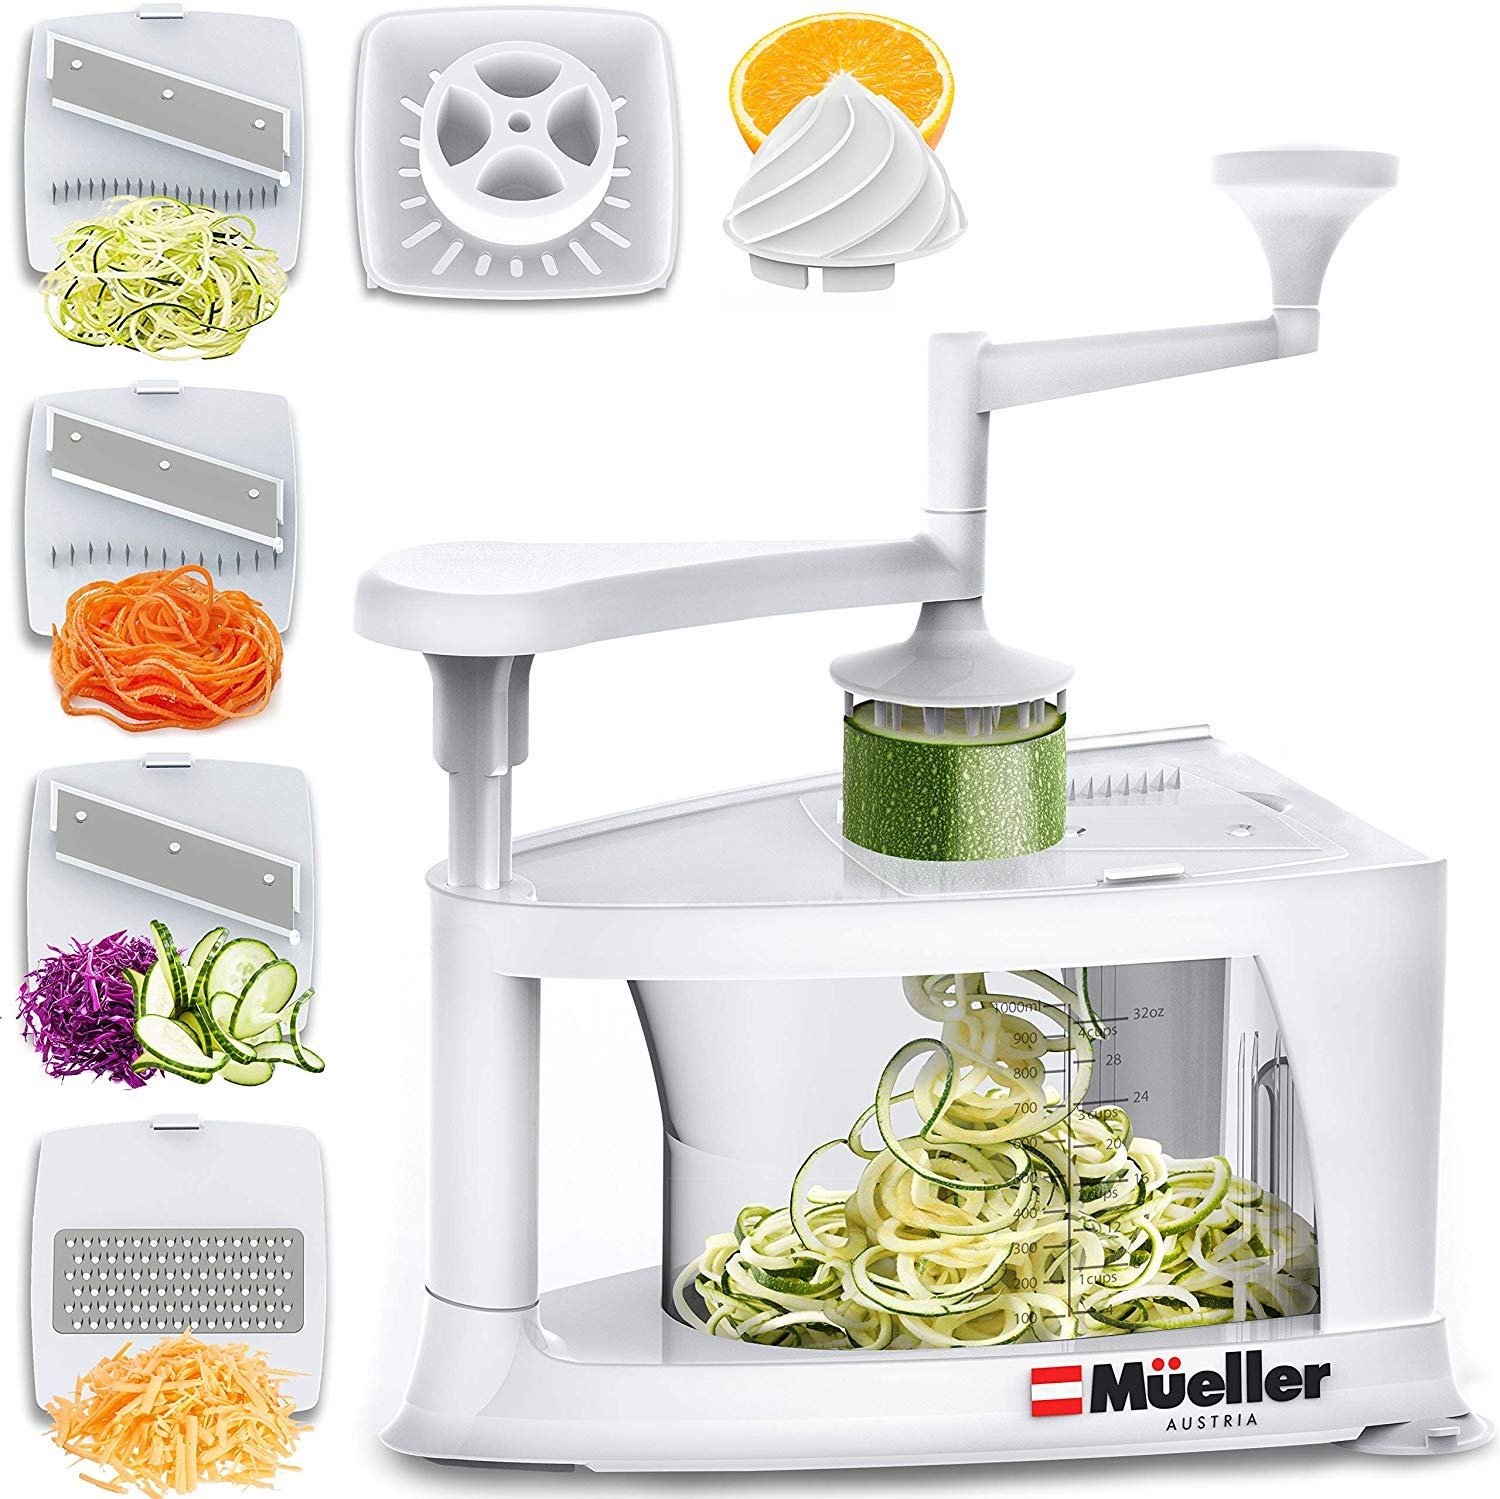 Mueller Spiral-Ultra Multi-Blade Spiralizer, 8 into 1 Spiral Slicer, Heavy Duty Salad Utensil, Vegetable Pasta Maker and Mandoline Slicer for Low Carb/Paleo/Gluten-Free Meals by Mueller Austria